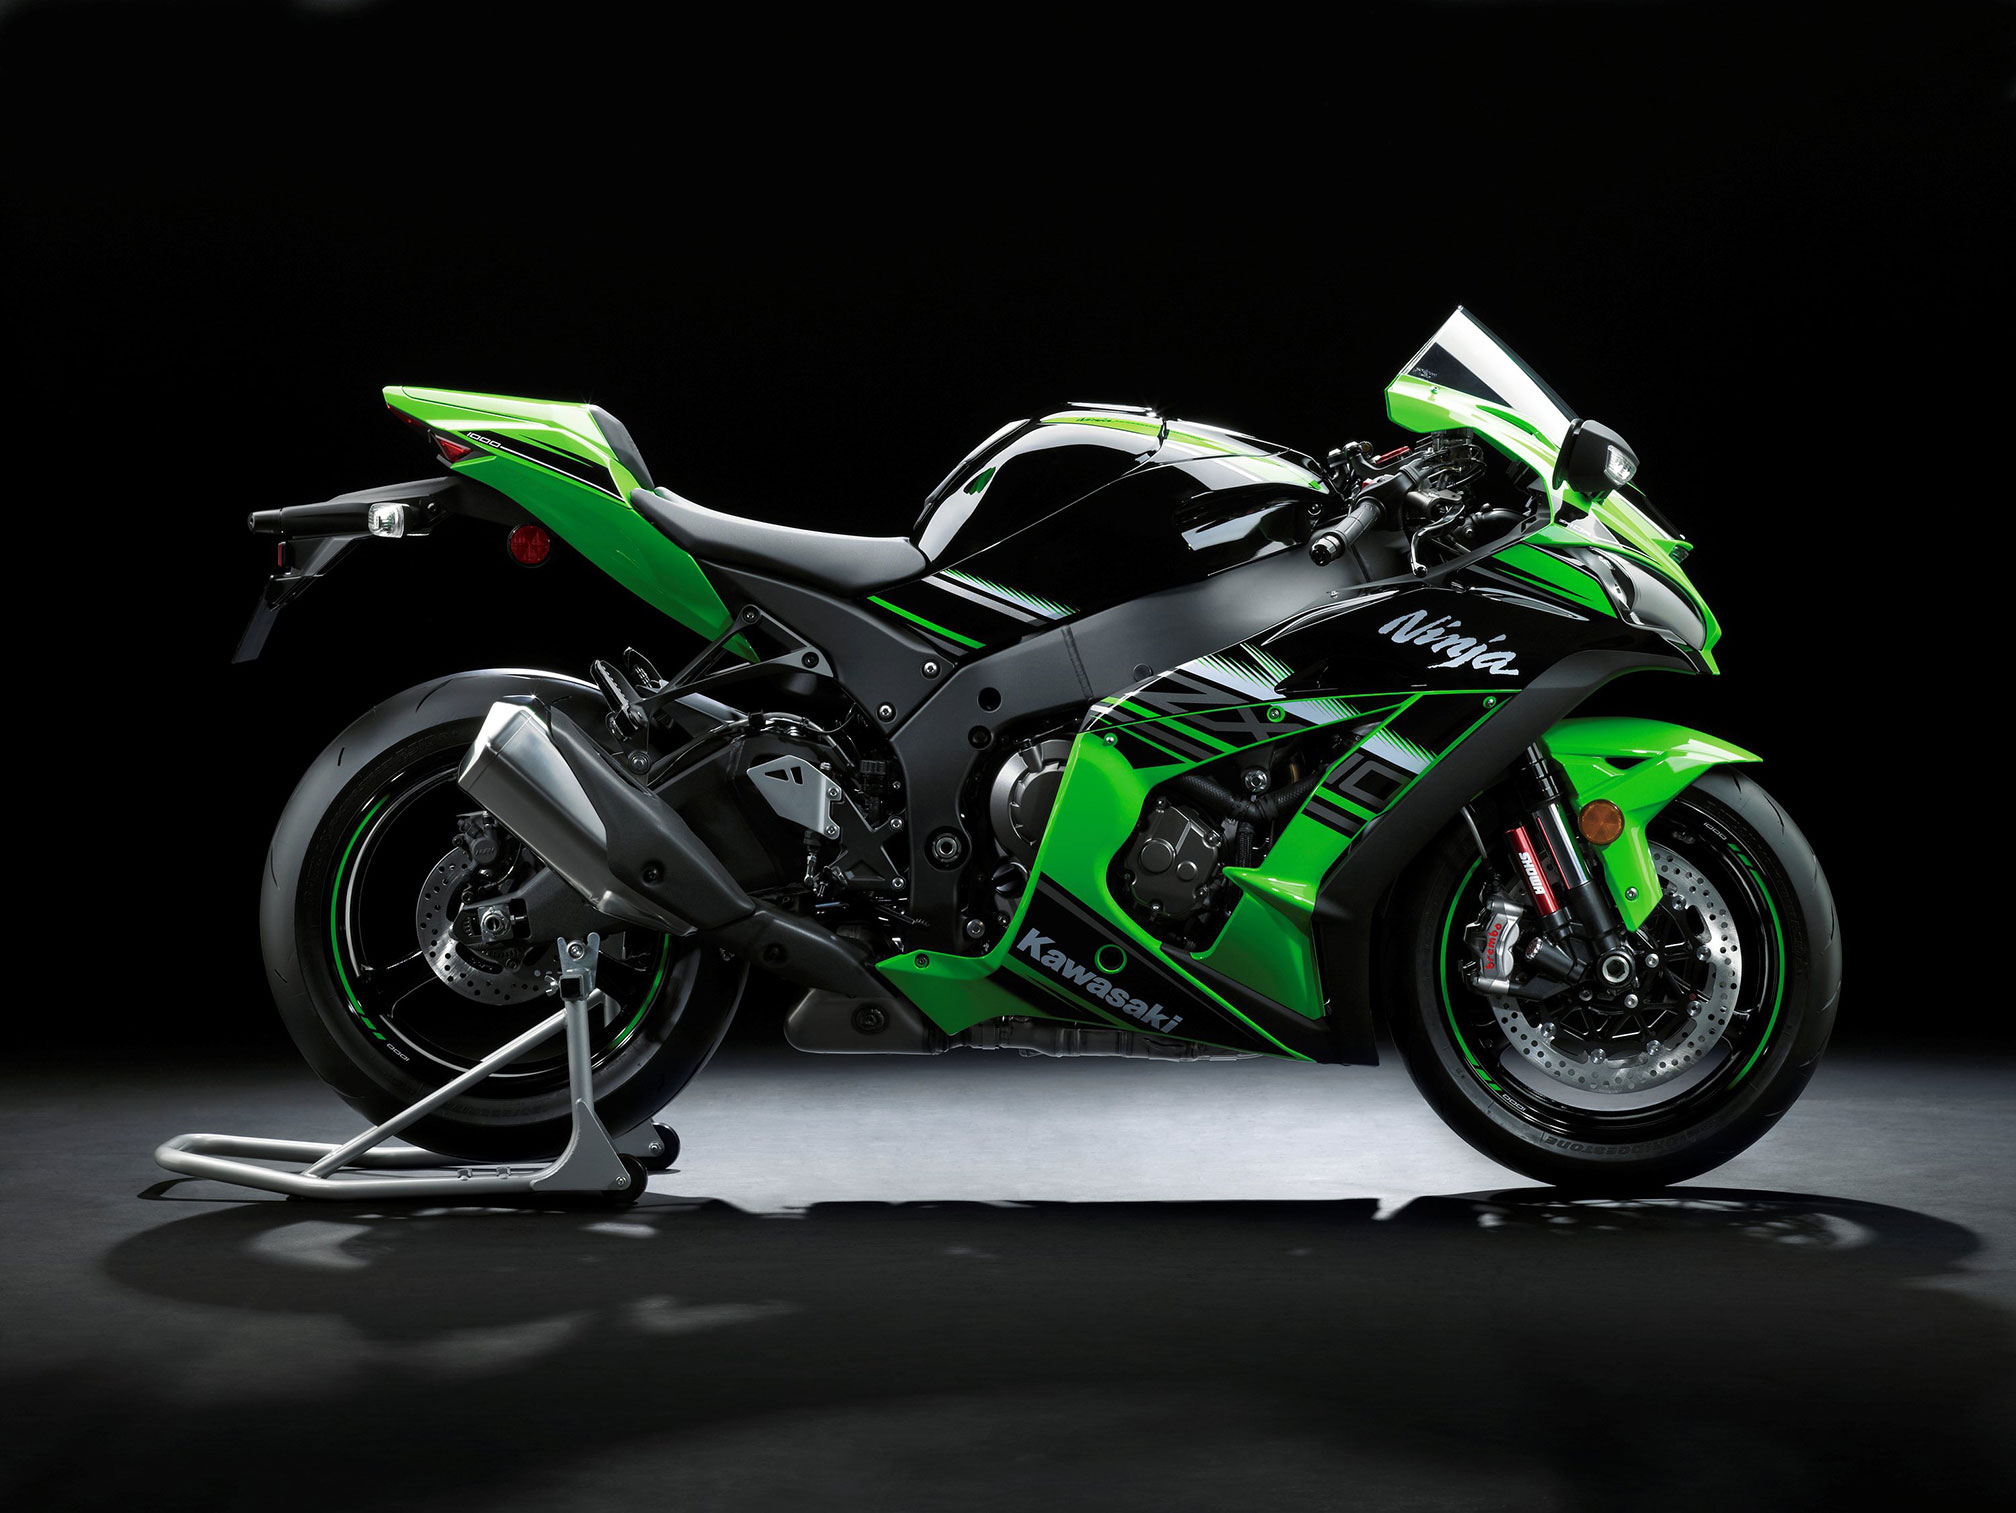 2016 kawasaki ninja zx-10r abs krt edition review